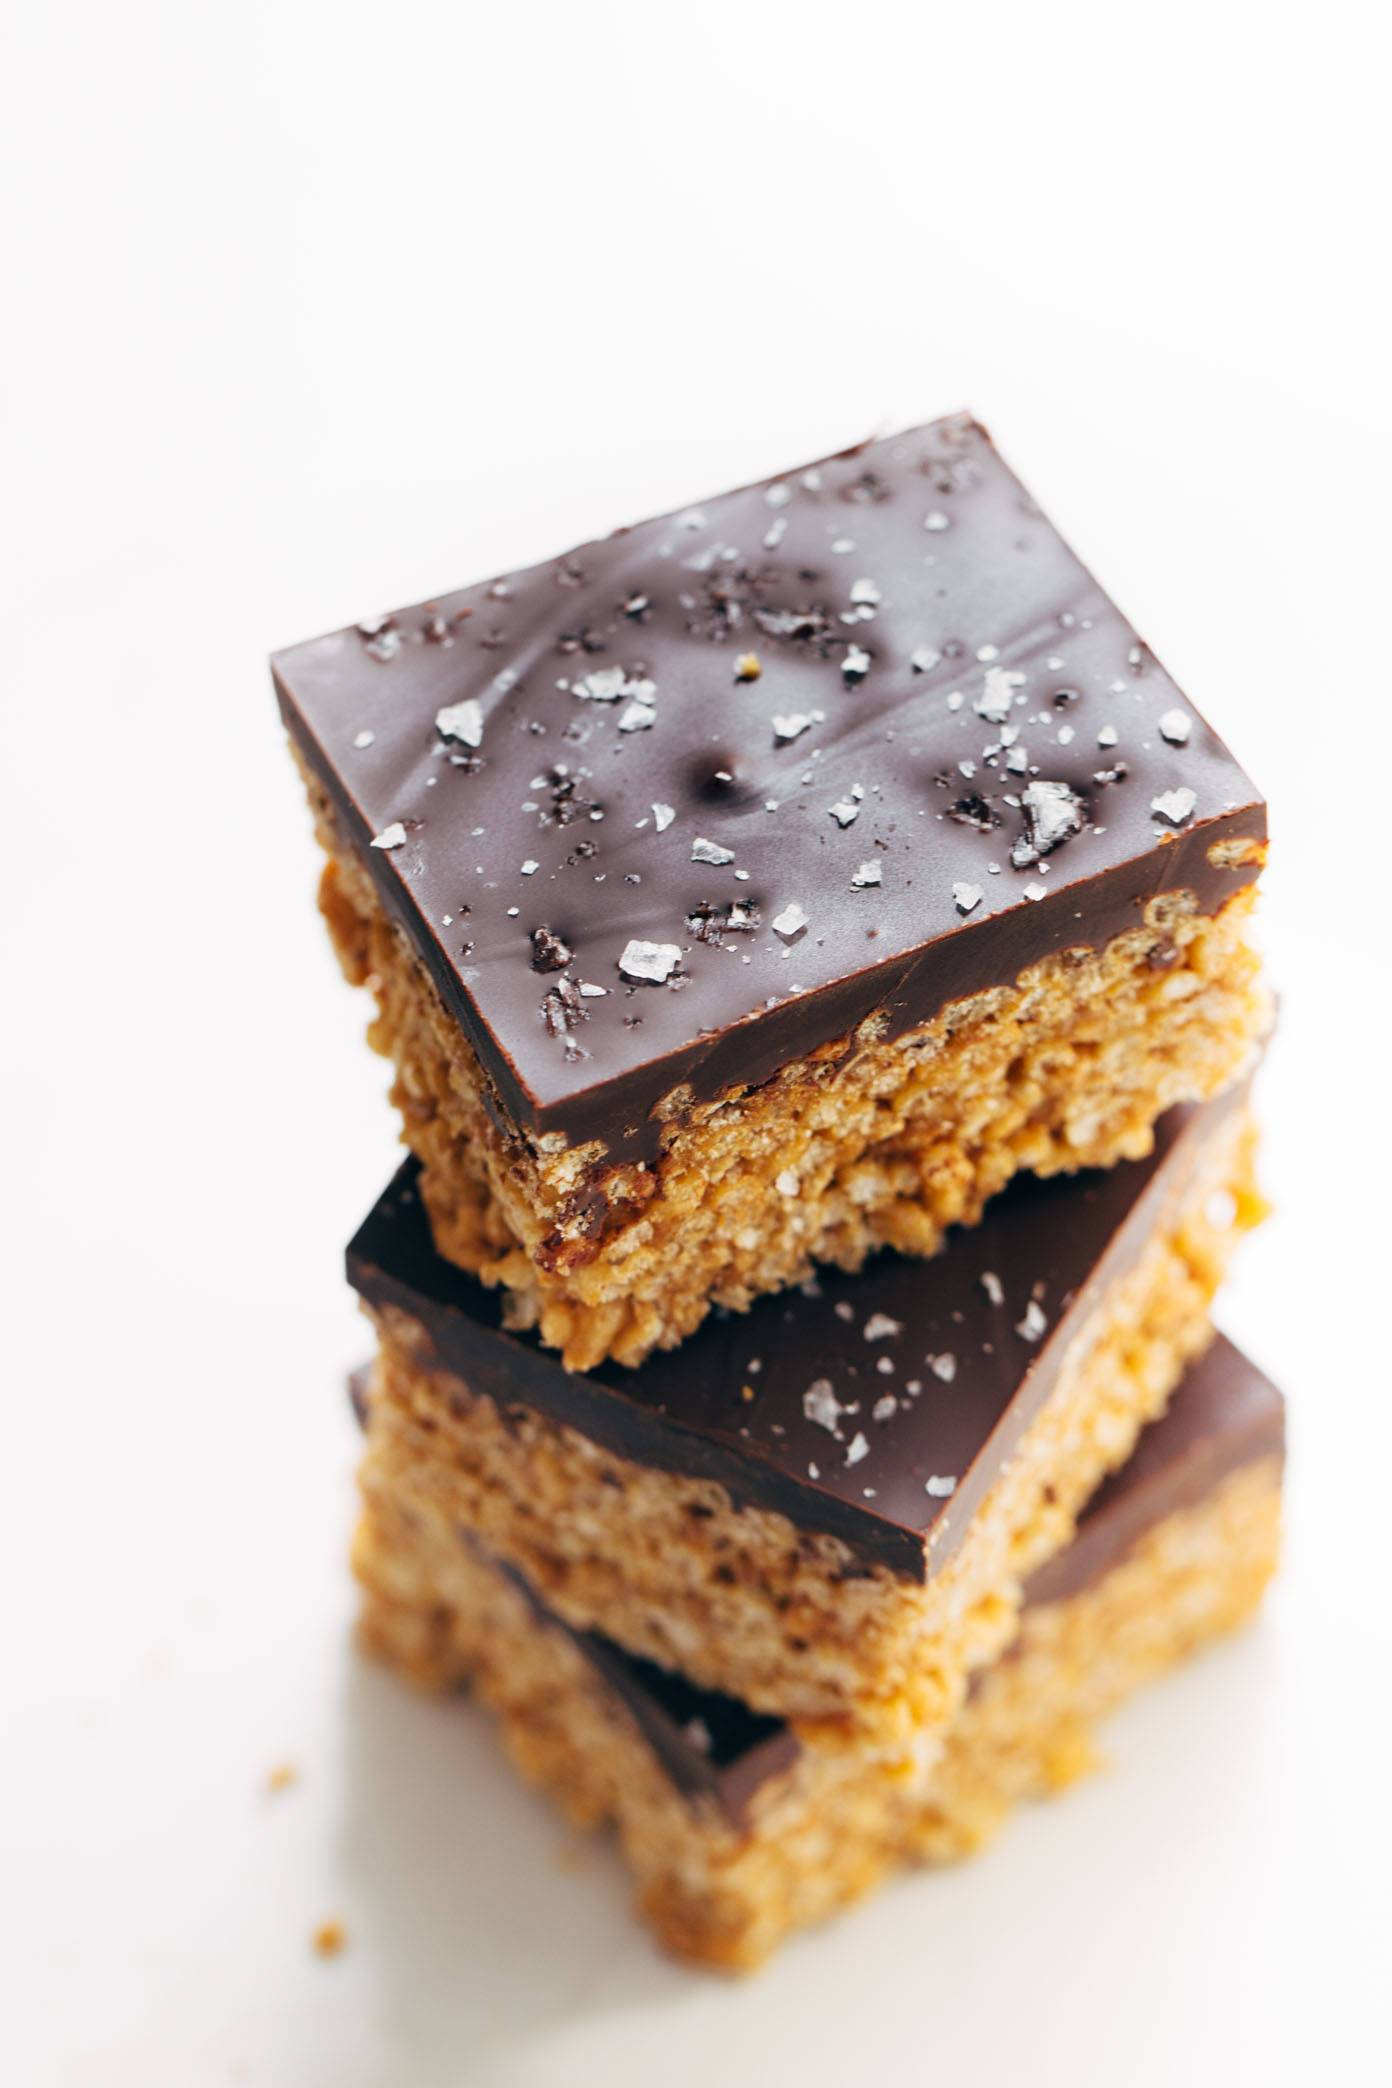 The classic chocolate-covered peanut butter rice krispie bars --> with 5 ingredients and minimal refined sugar, thanks to a few modern swaps! my go-to for road trip snacks. | pinchofyum.com